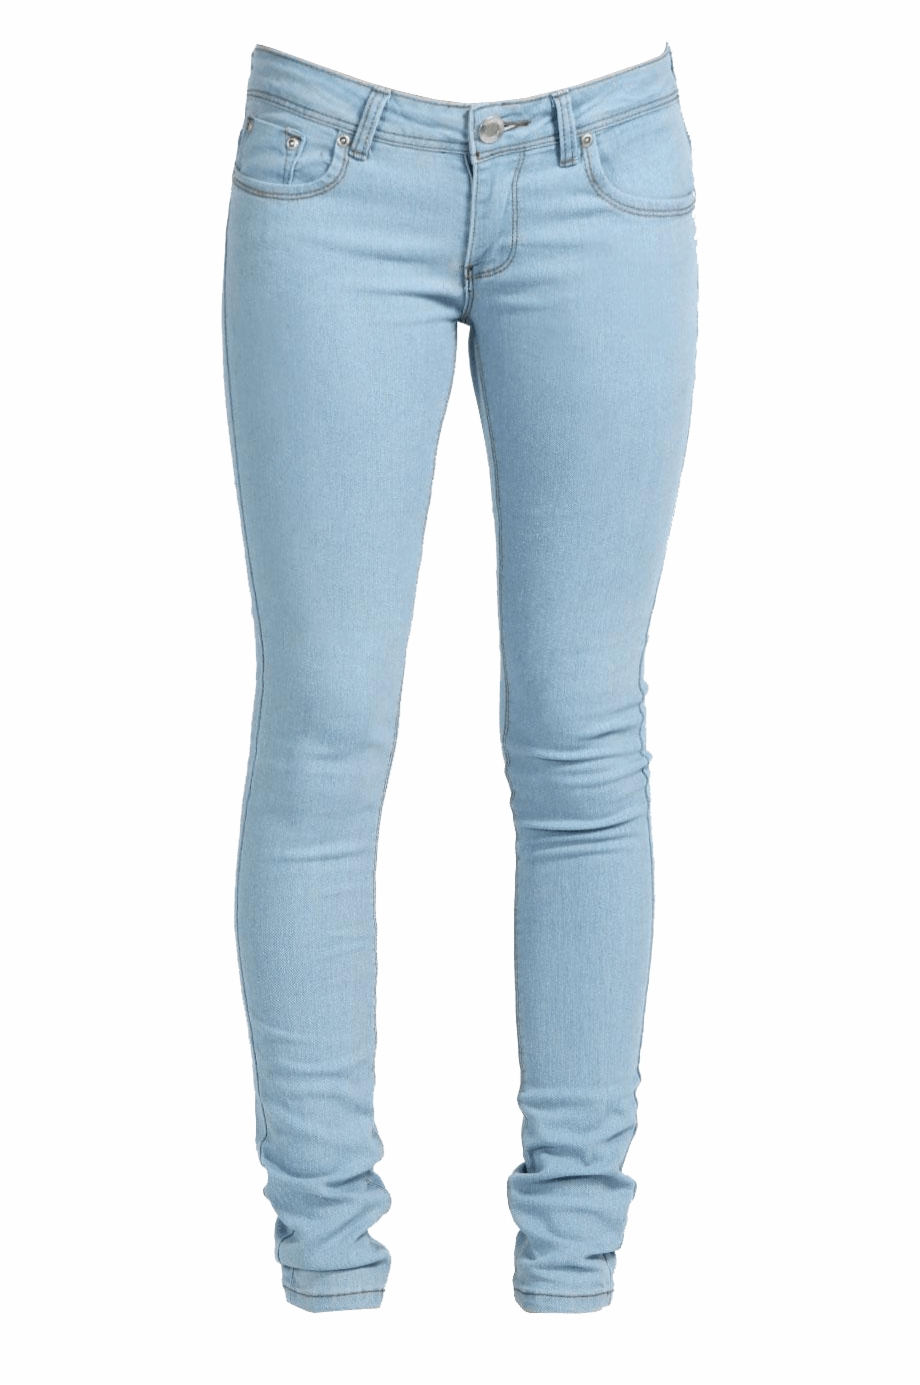 Light Blue Denim Jeans Transparent Background Clothing.